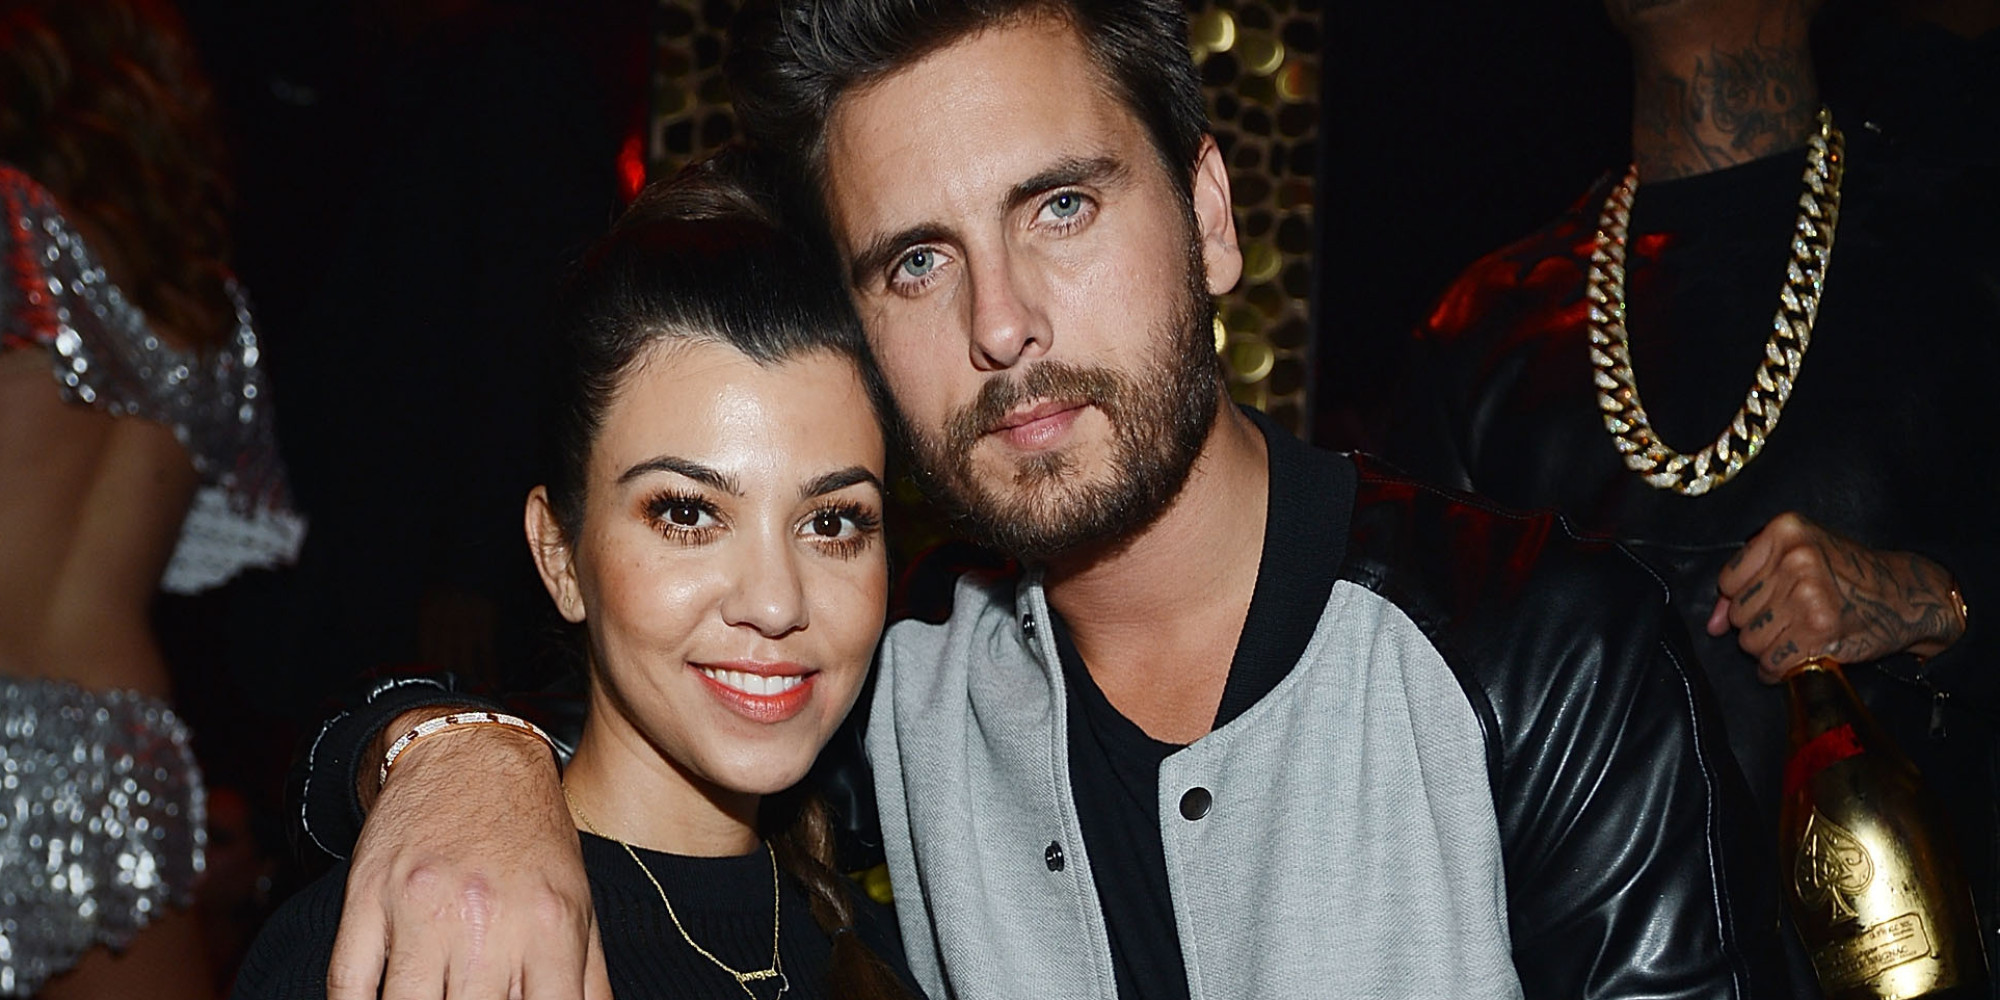 With you Scott disick and kourtney kardashian your idea